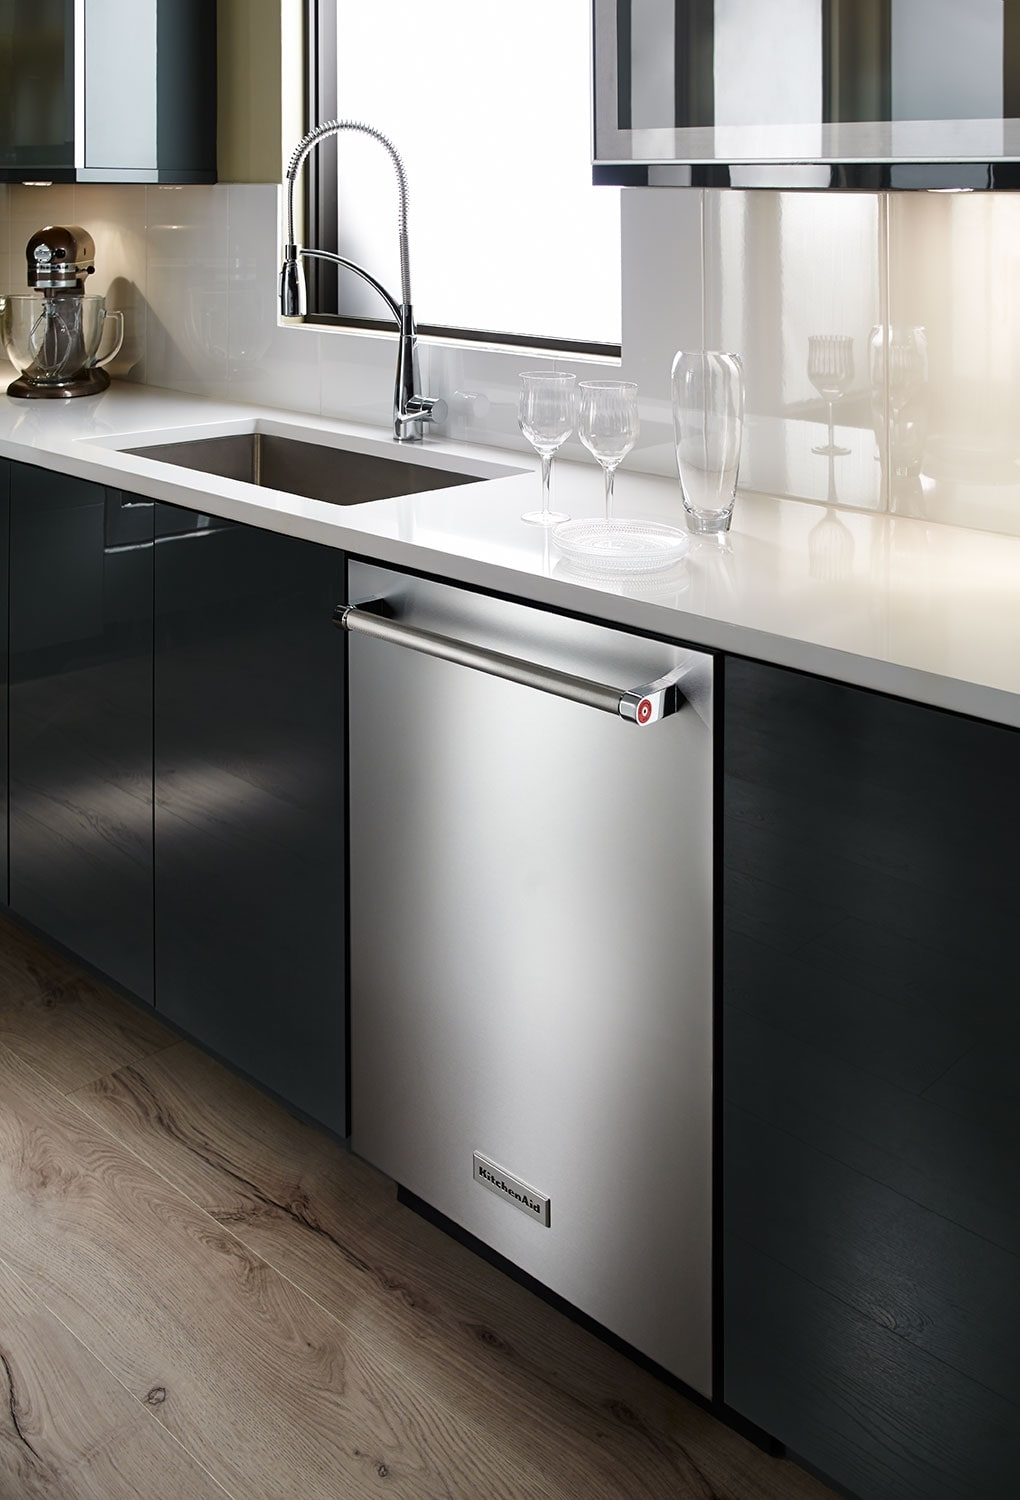 "Kitchenaid Dishwasher Stainless Steel kitchenaid stainless steel 24"" dishwasher - kdte204ess 